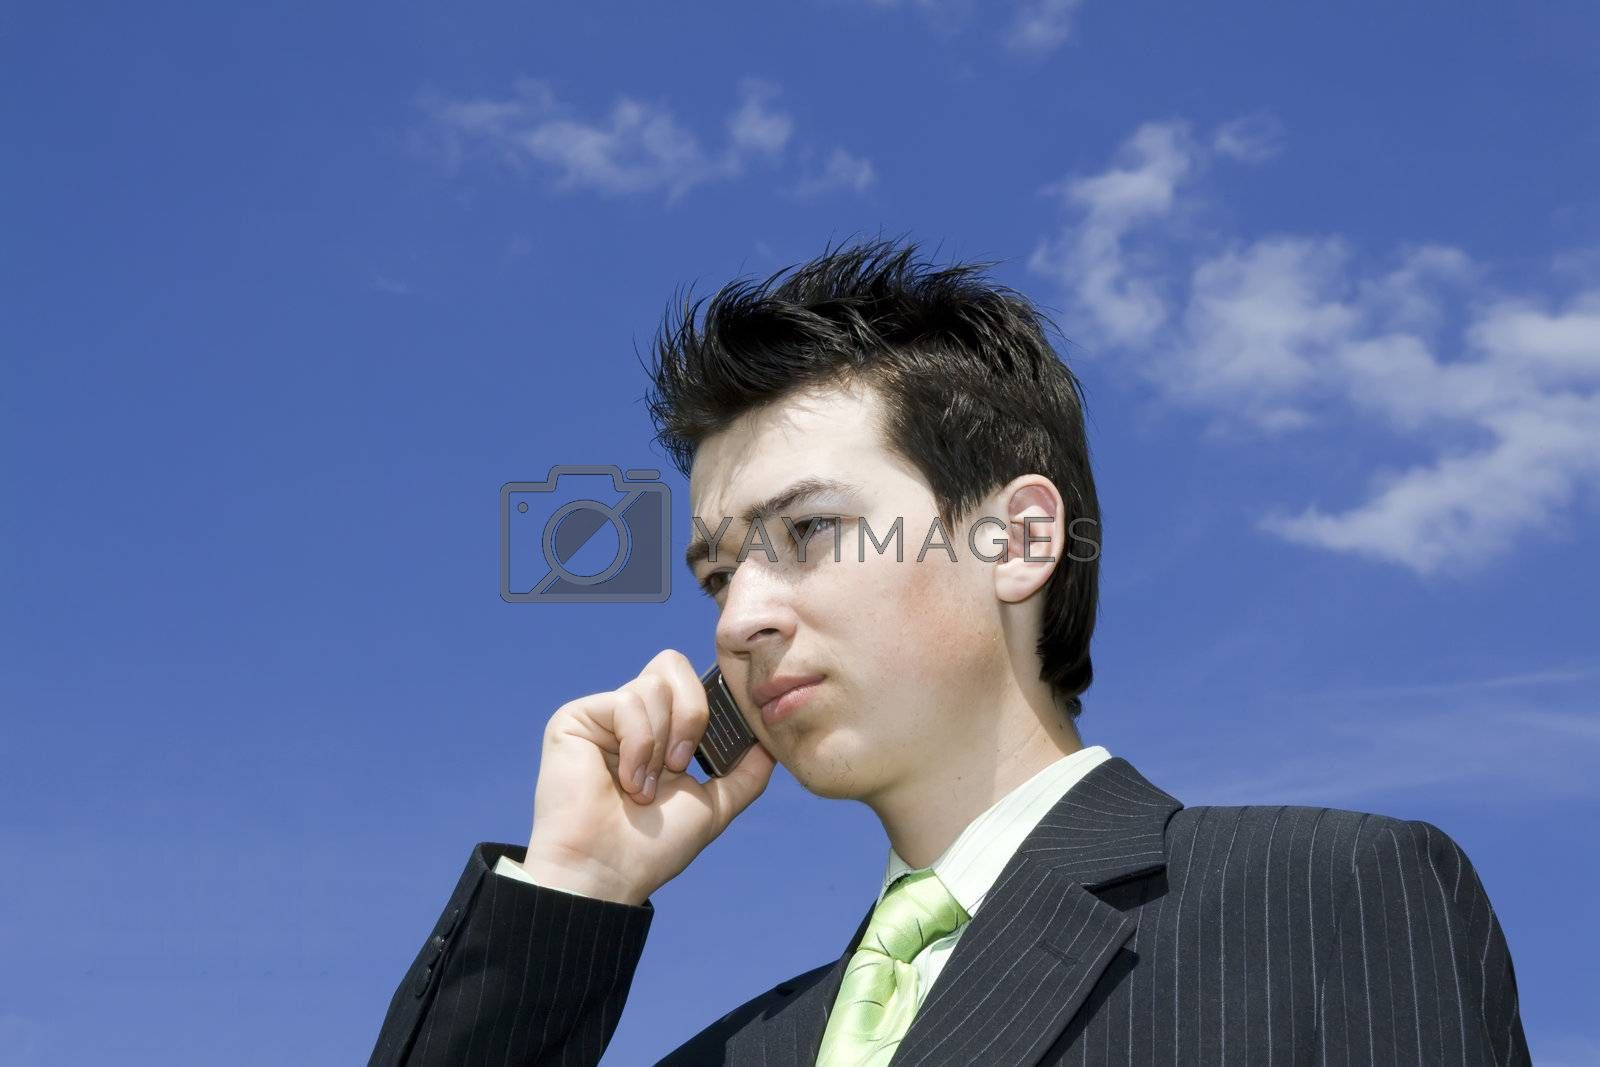 Businessman talking with mobile against blue sky background. Copyspace